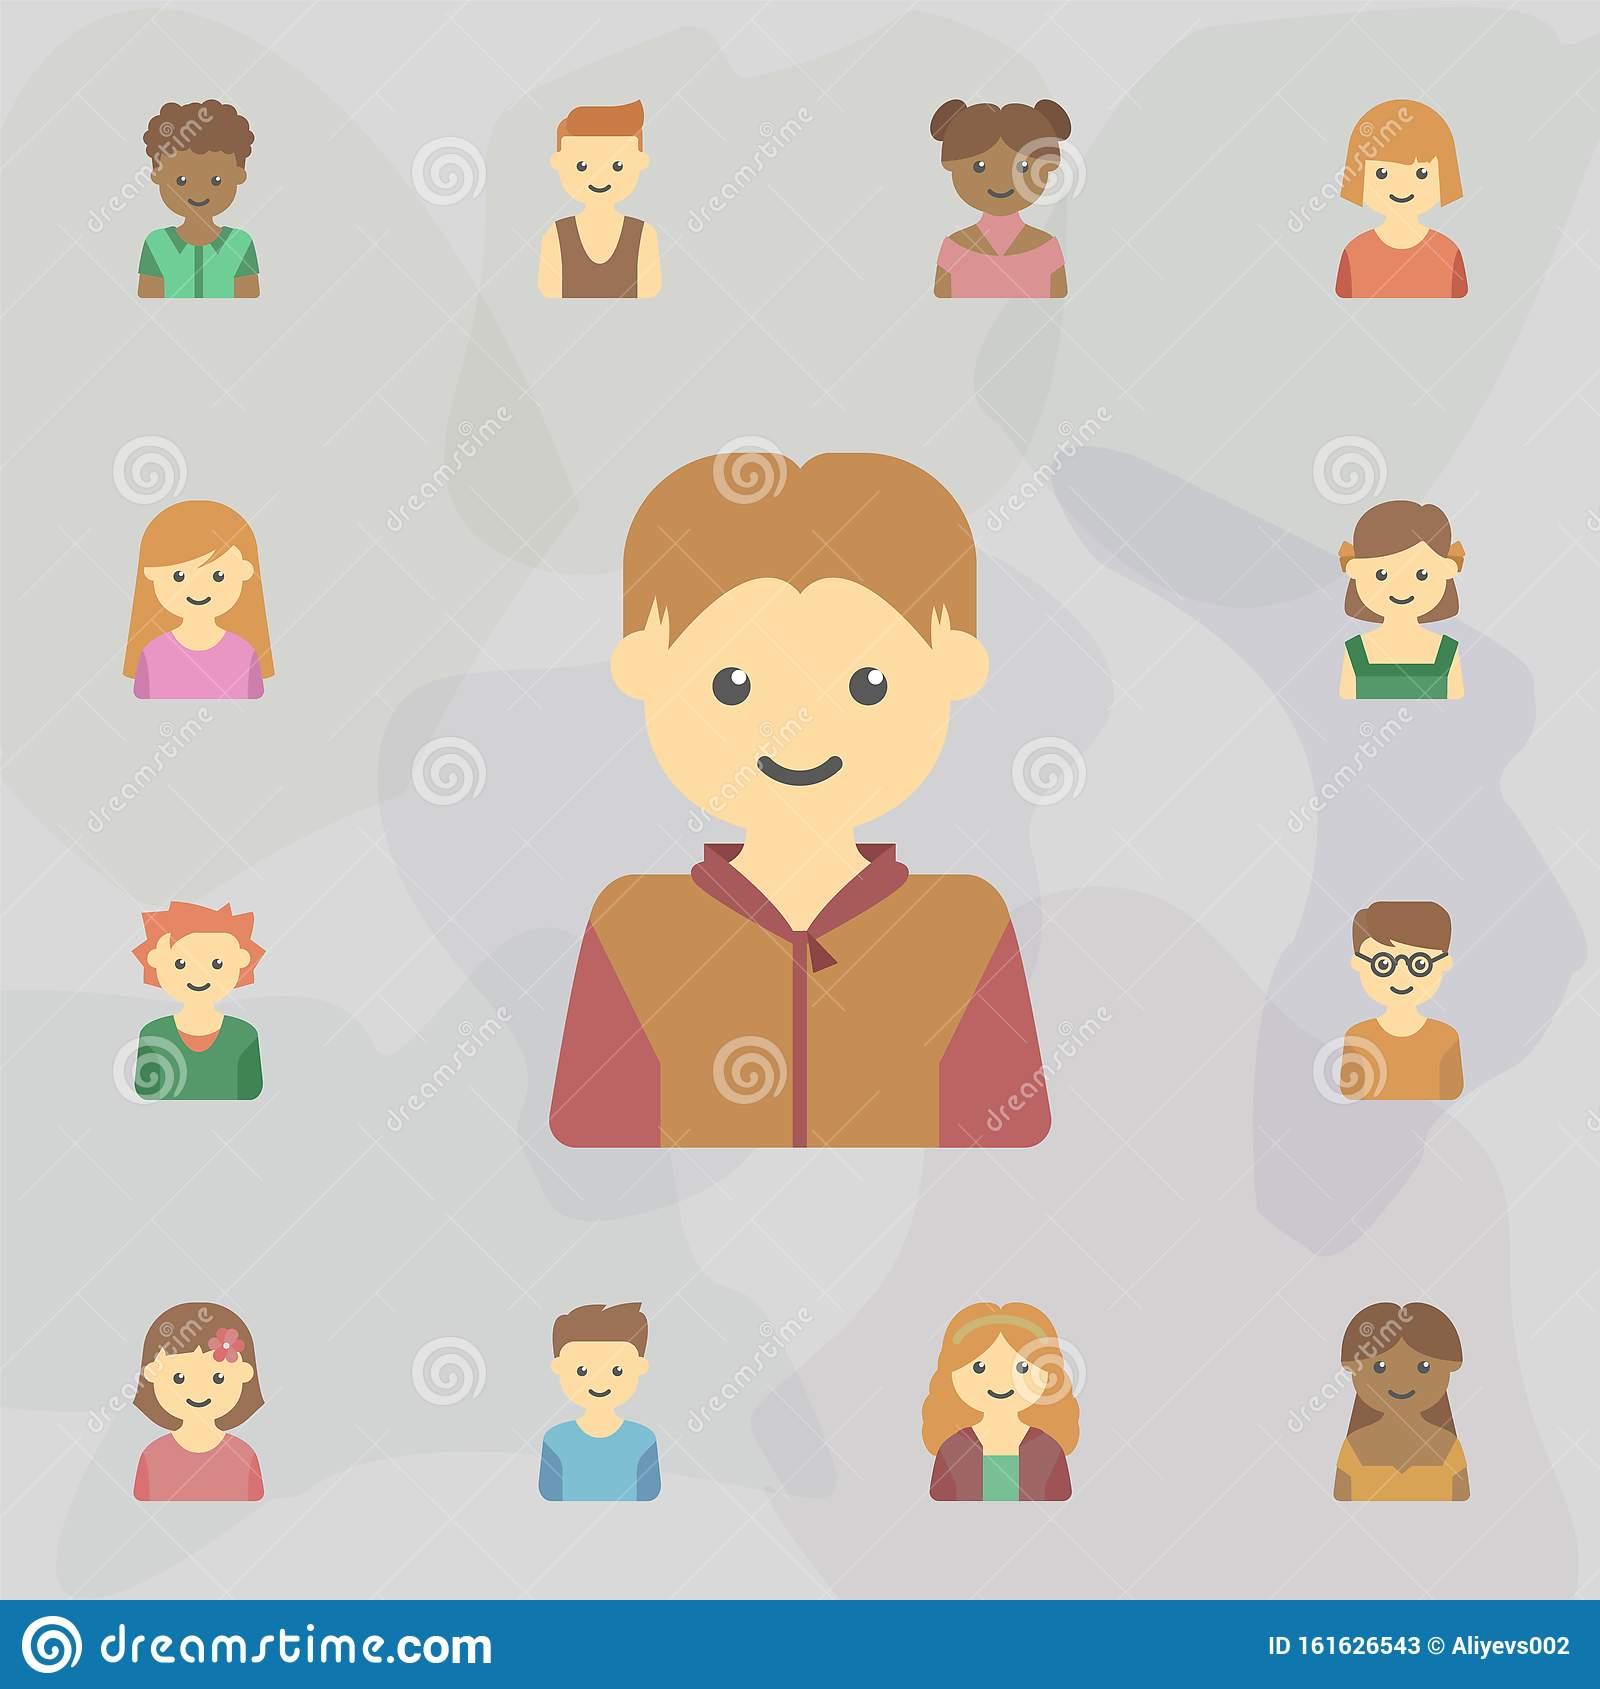 Avatar Of Guy Colored Icon Universal Set Of Kids Avatars For Website Design And Development App Development Stock Illustration Illustration Of Happy Person 161626543